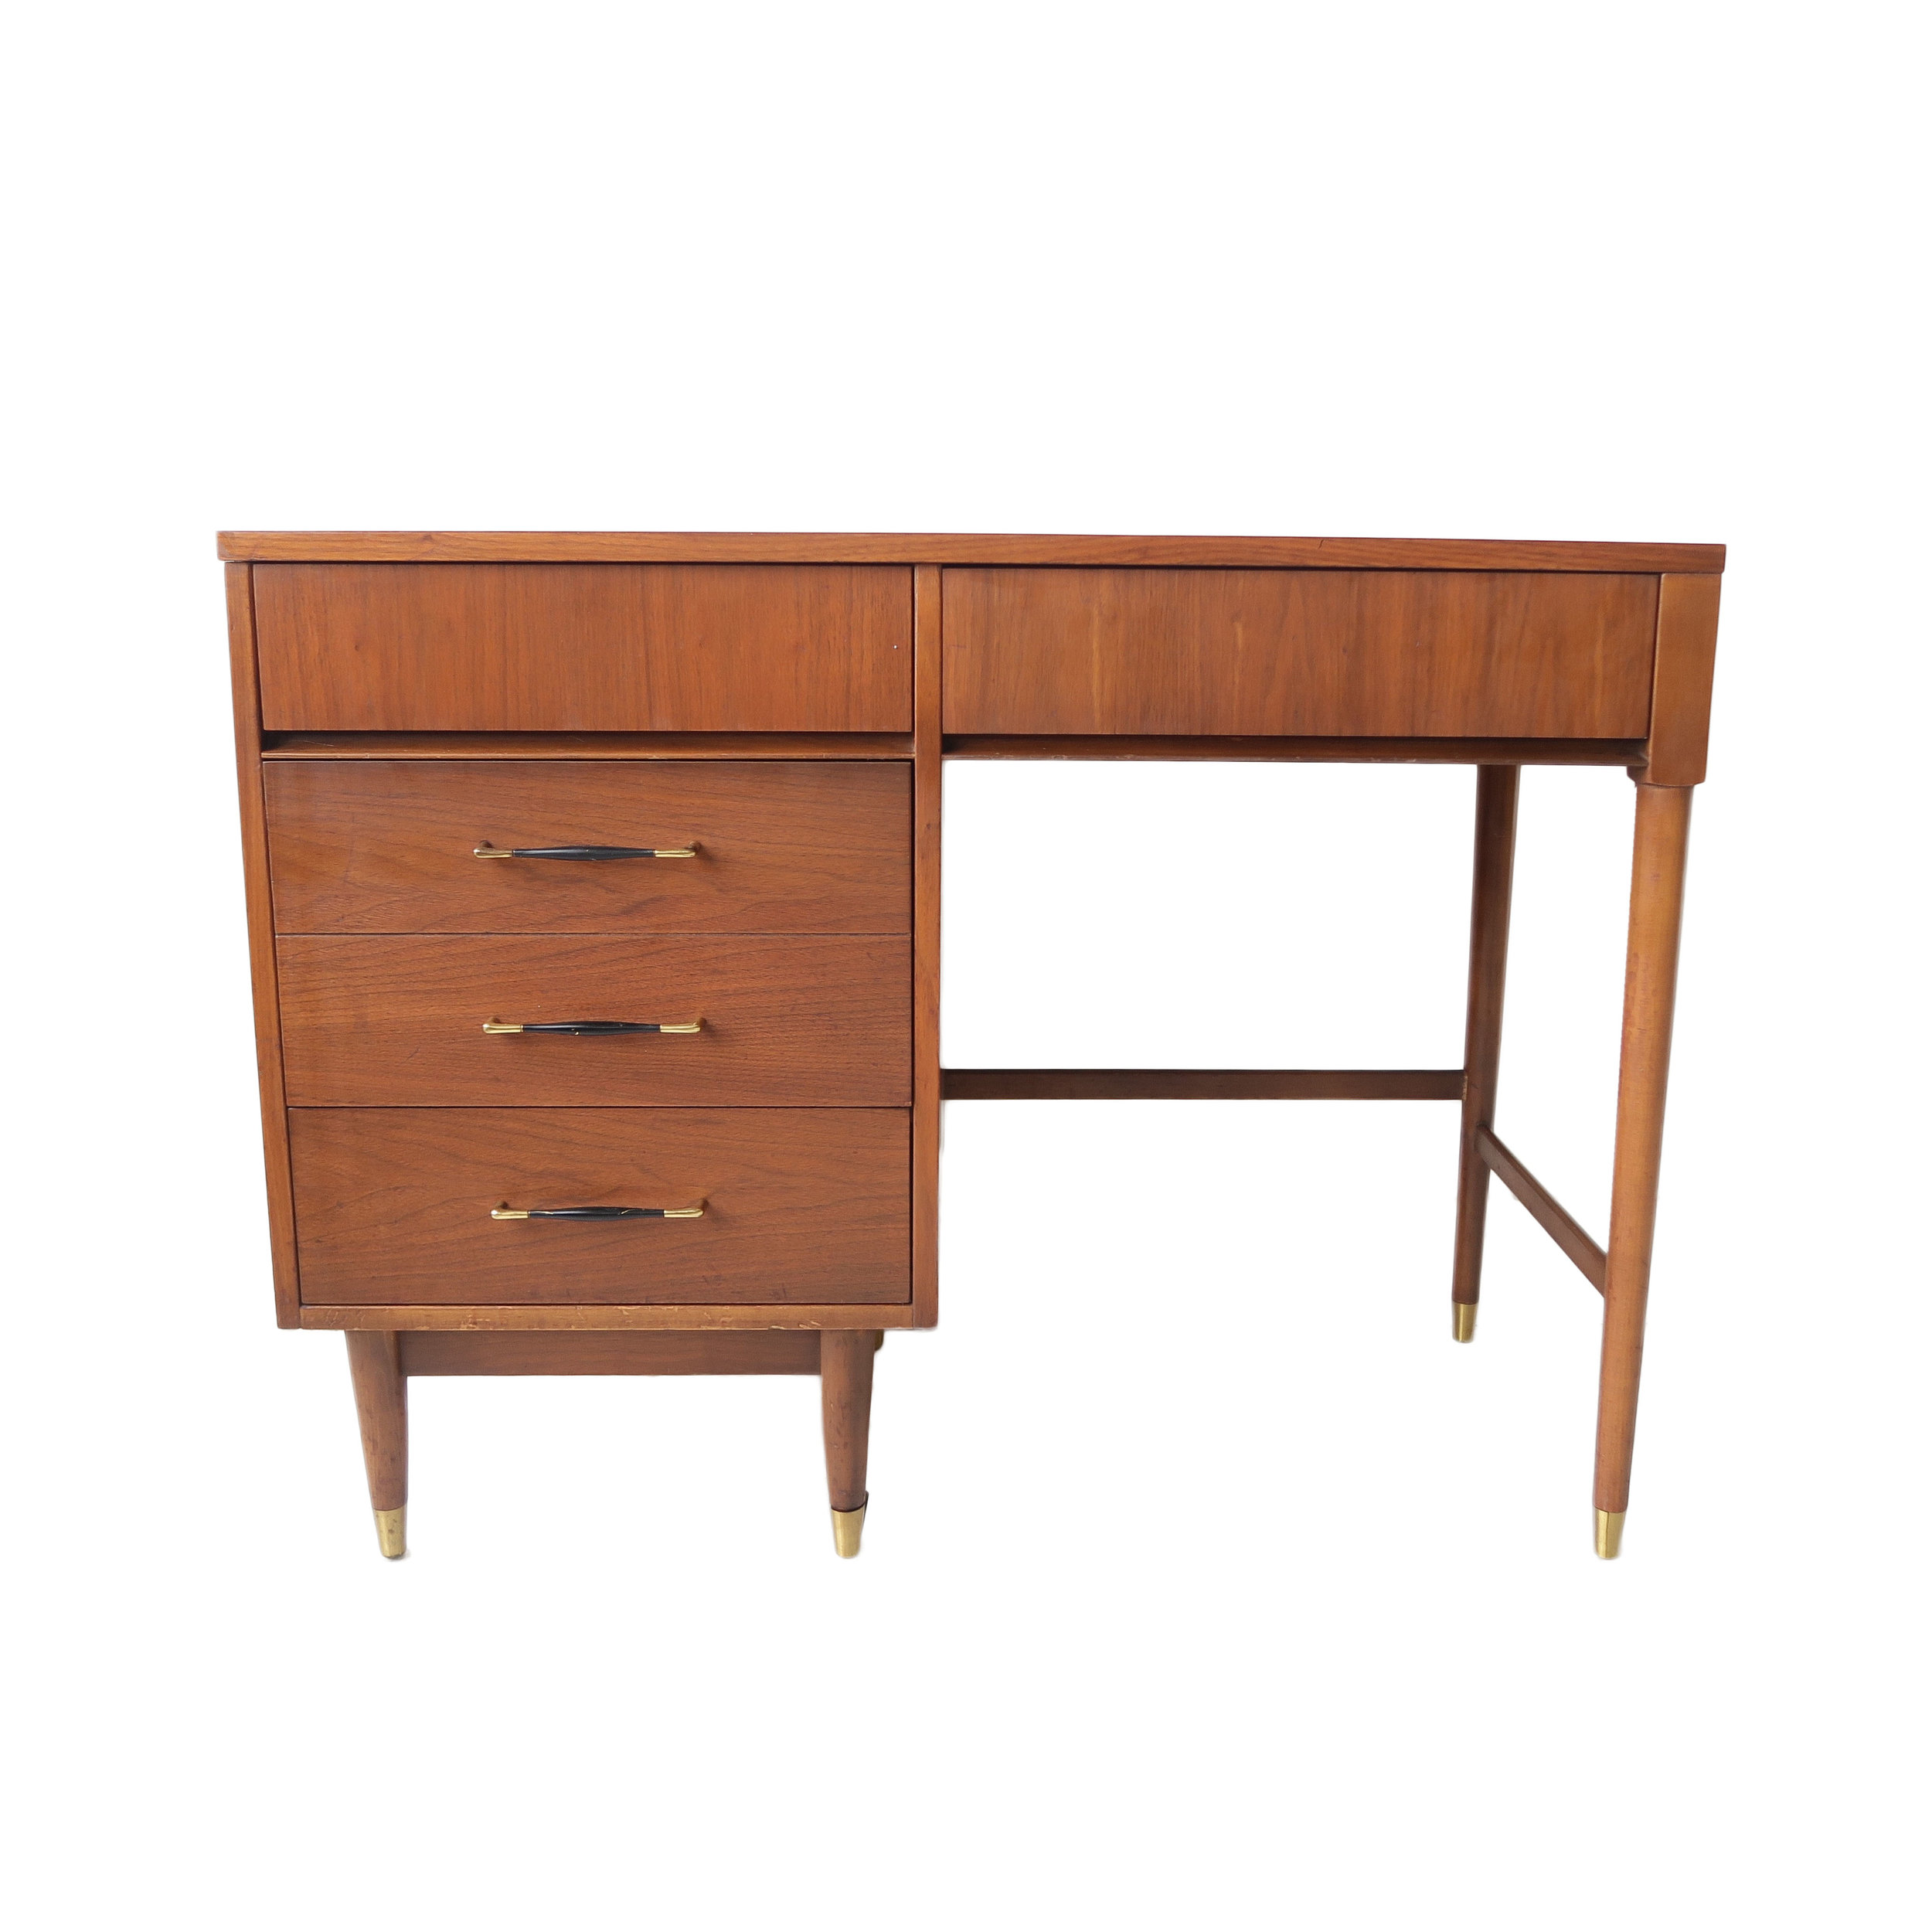 At 1st Sight New Products Vintage Mid Century Modern Floating Desk